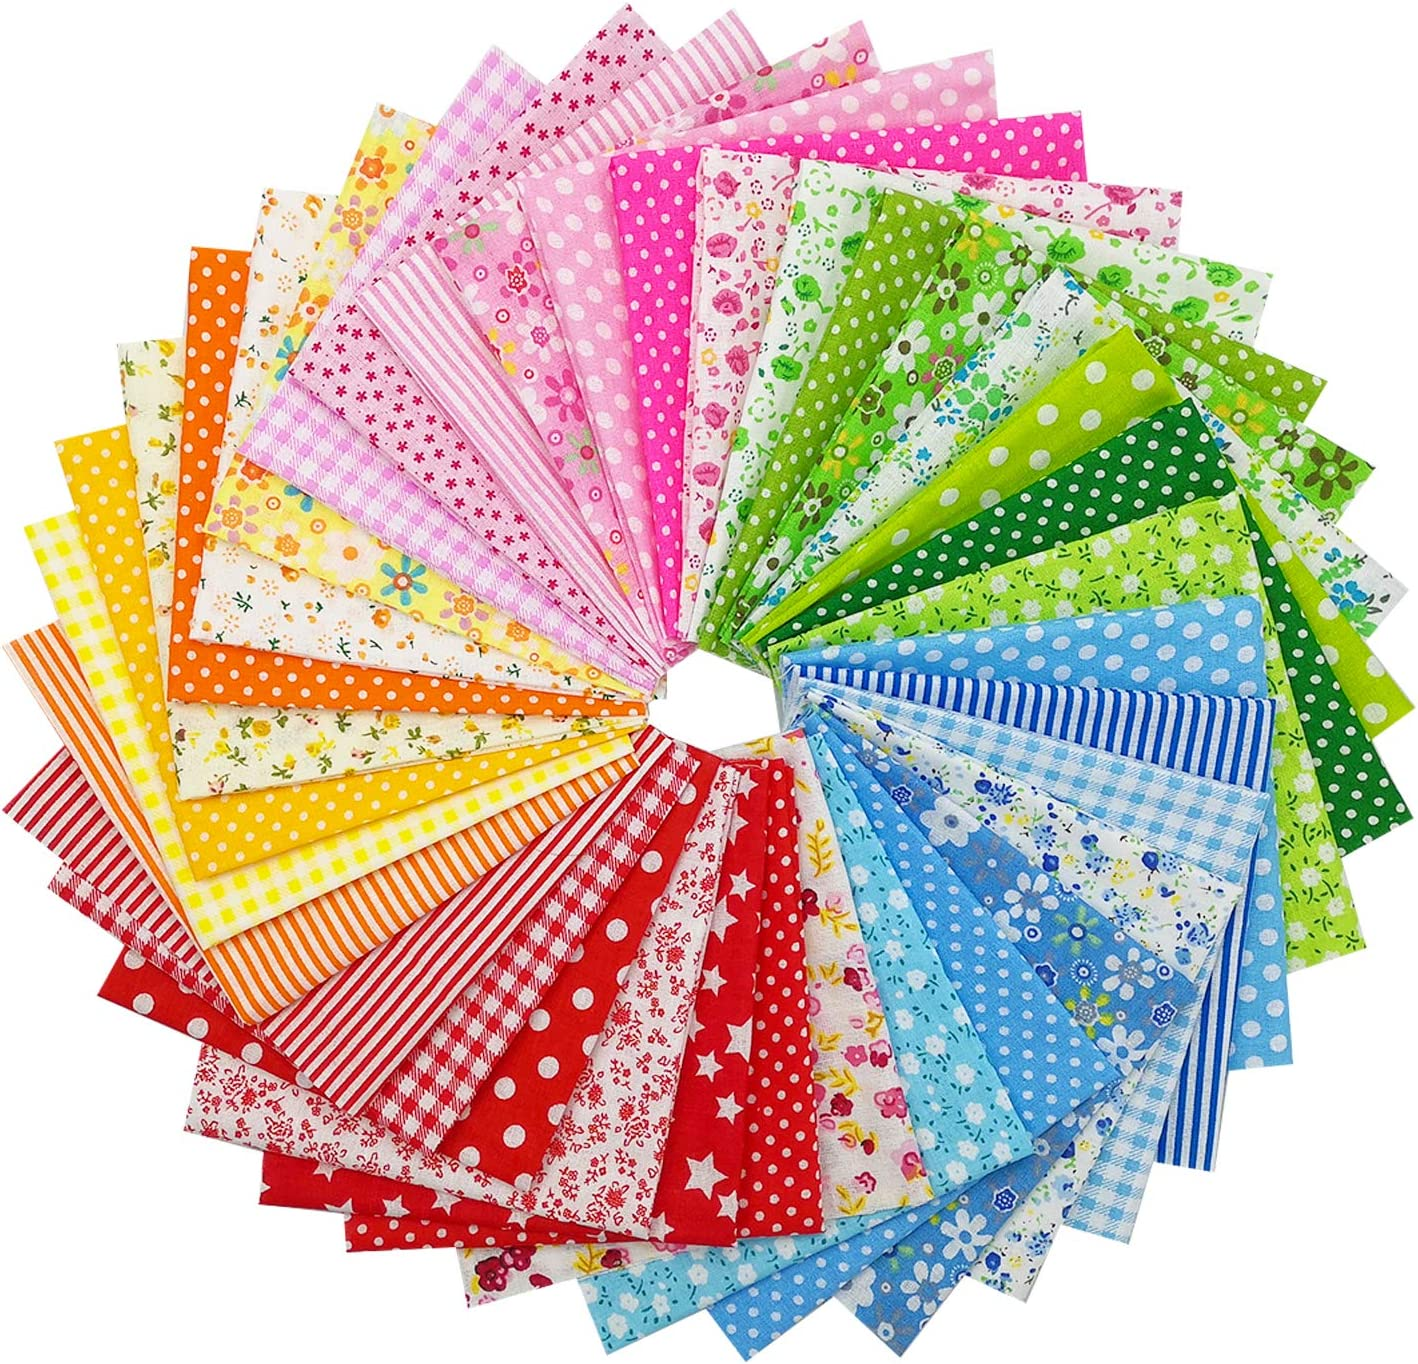 Cotton quilting sewing crafting batik 7 pack fat quarters quilt fabrics-FREE US SHIPPING!